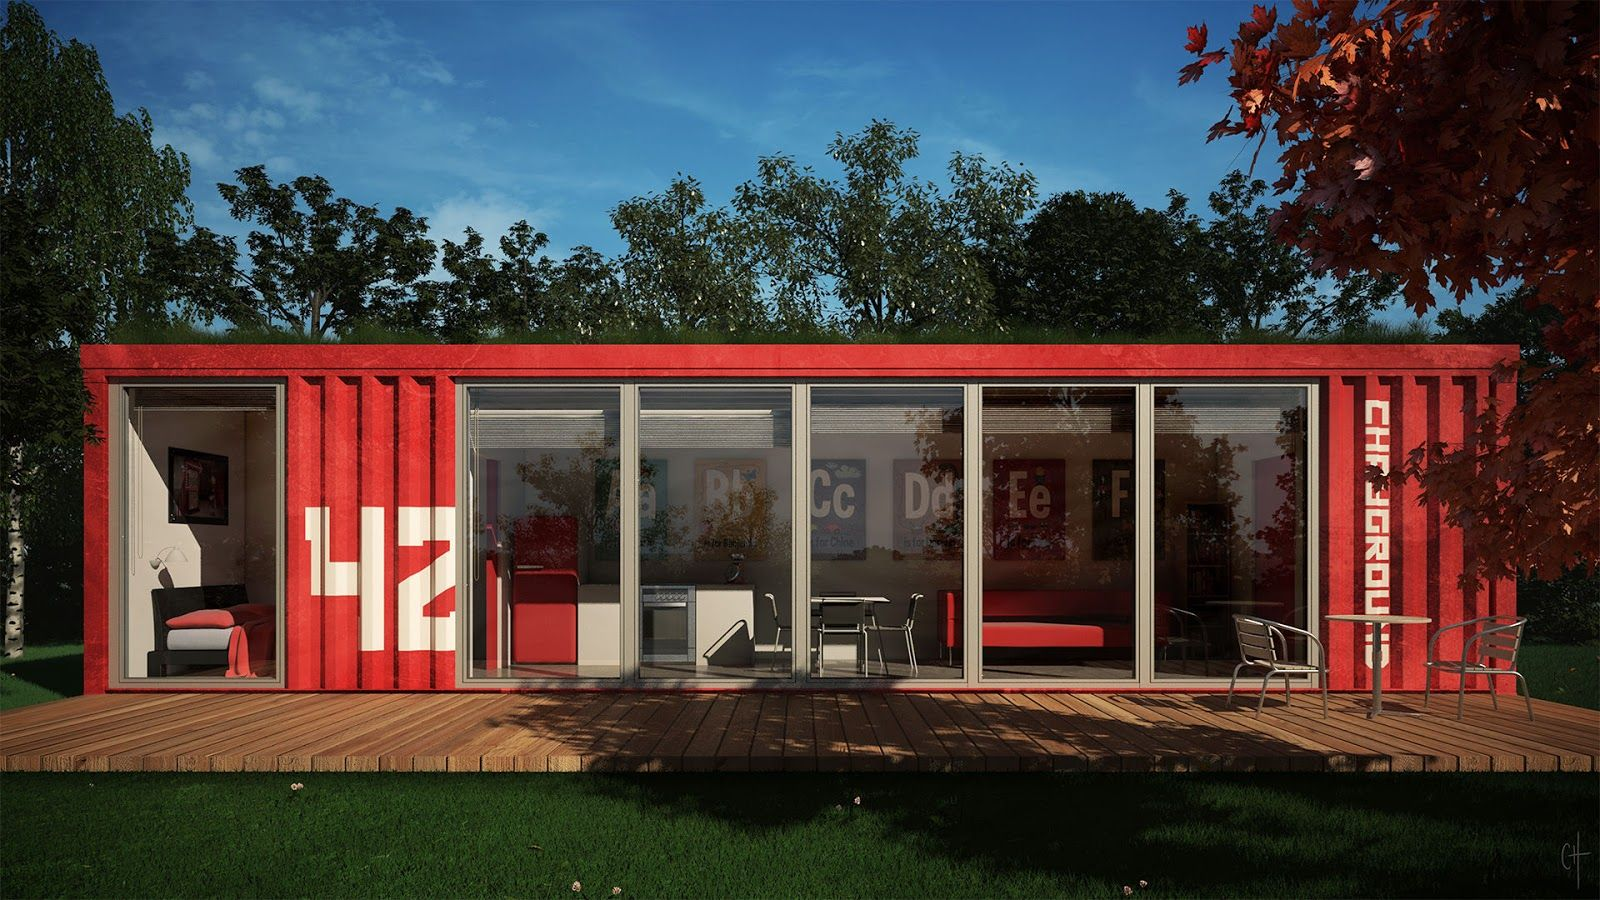 Best Kitchen Gallery: Shipping Container Shelter Home Design Ideas Homedesign of Storage Conex Box Homes on rachelxblog.com